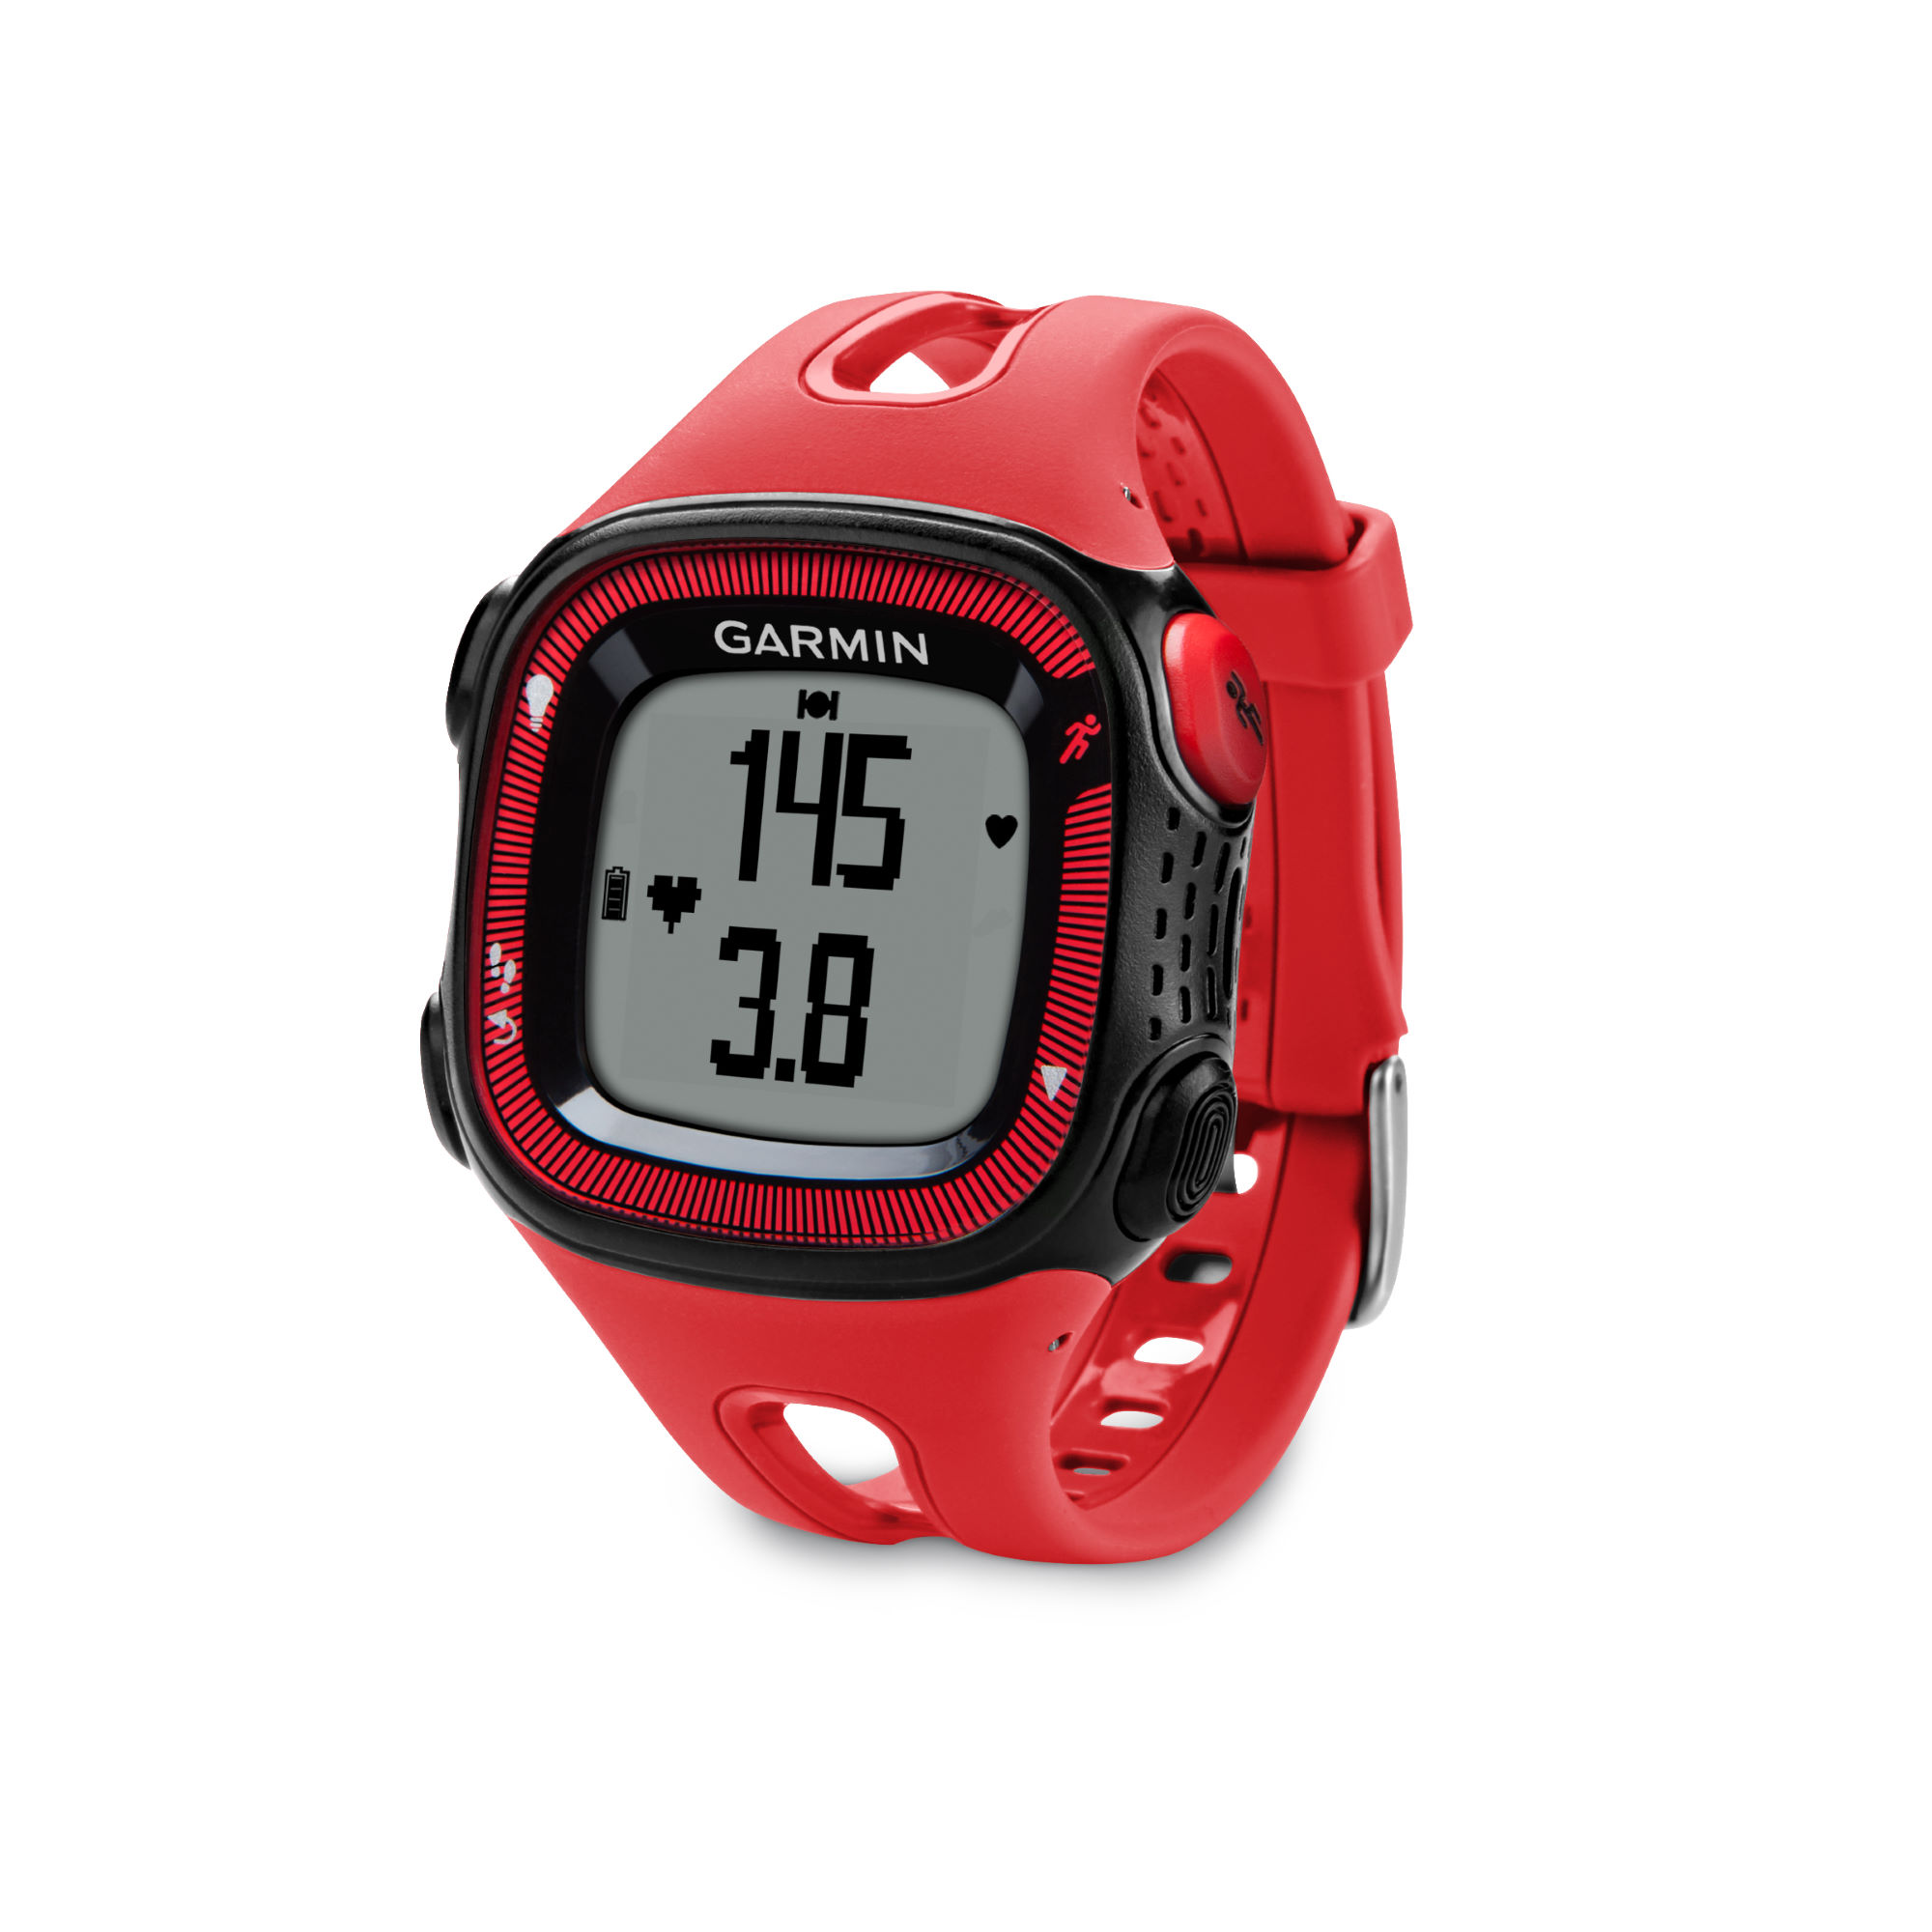 compteurs gps de running garmin forerunner 15 gps watch wiggle france. Black Bedroom Furniture Sets. Home Design Ideas